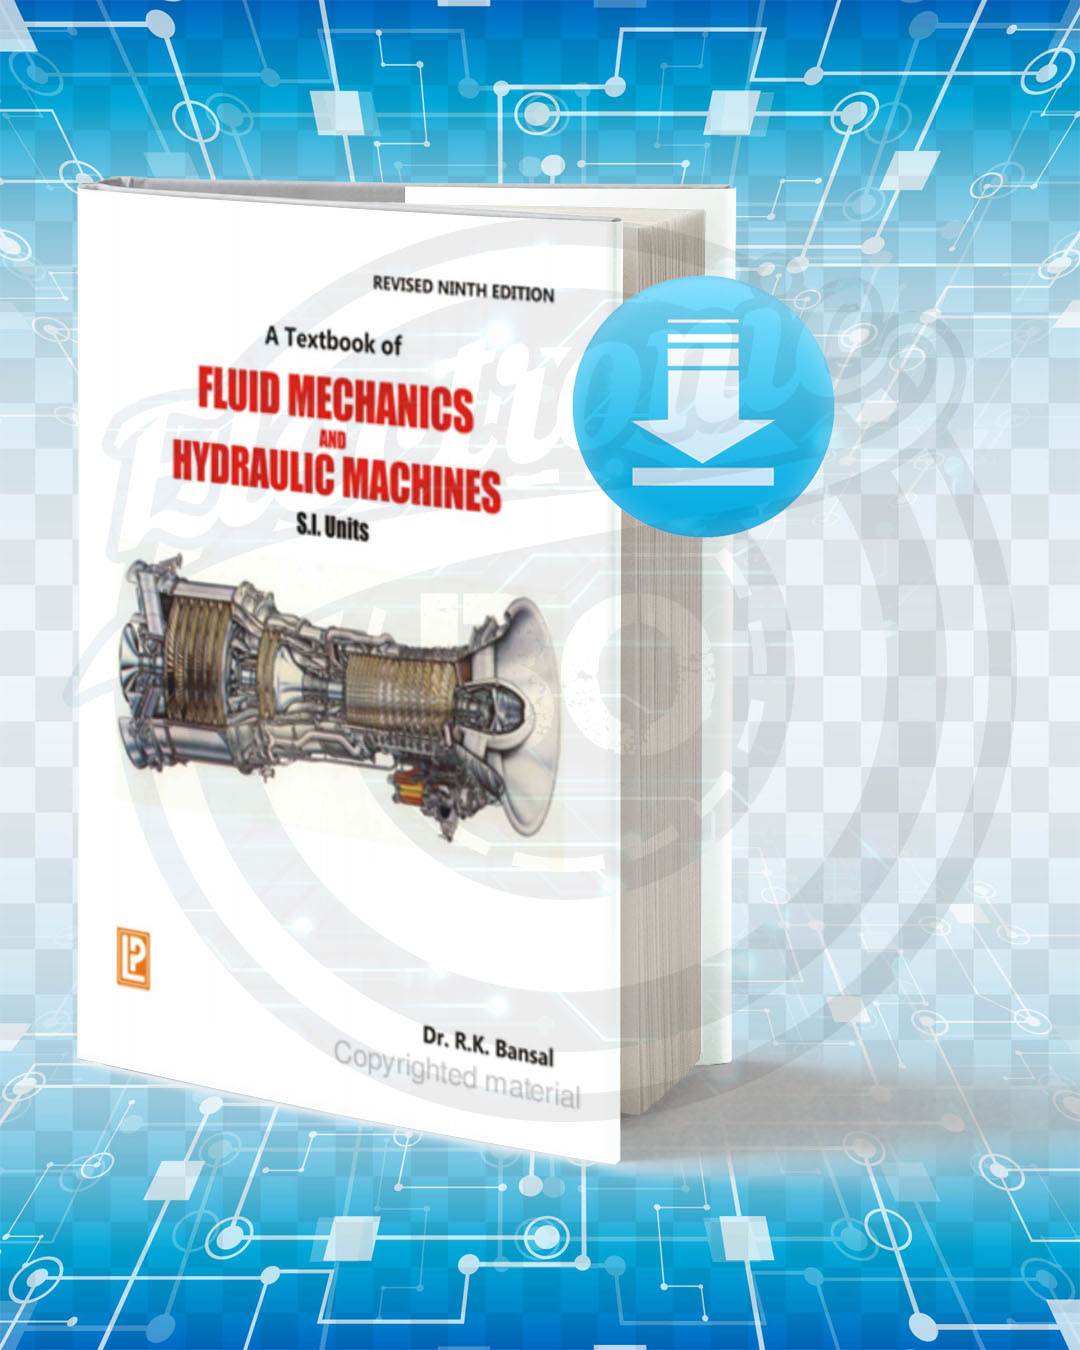 Download A Textbook of Fluid Mechanics and Hydraulic Machines